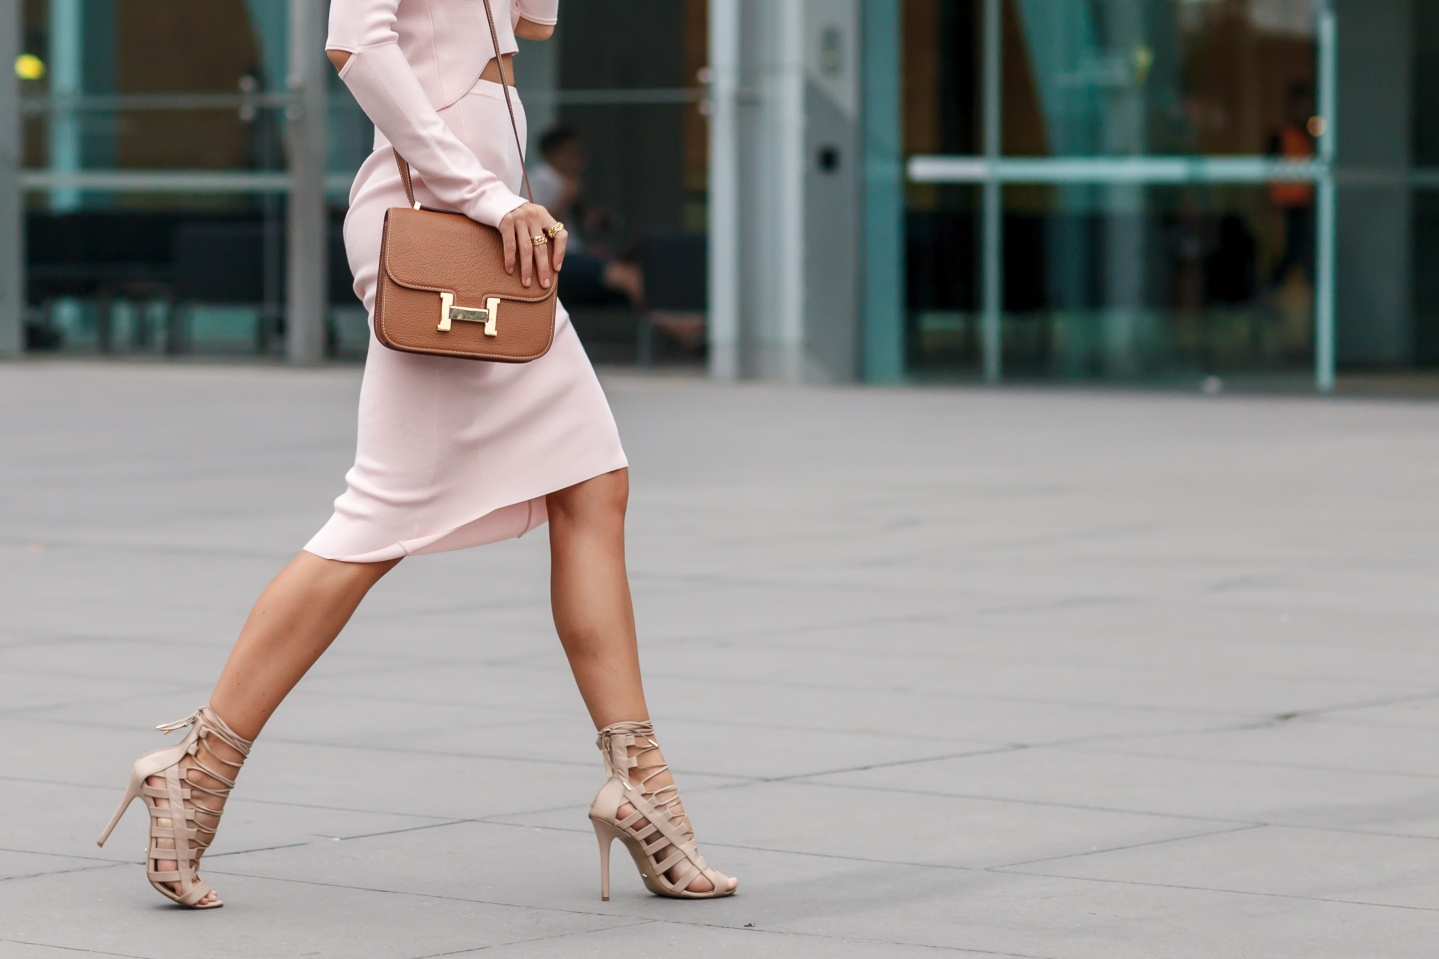 Your Ensemble Street Style Photography Meets Online Fashion